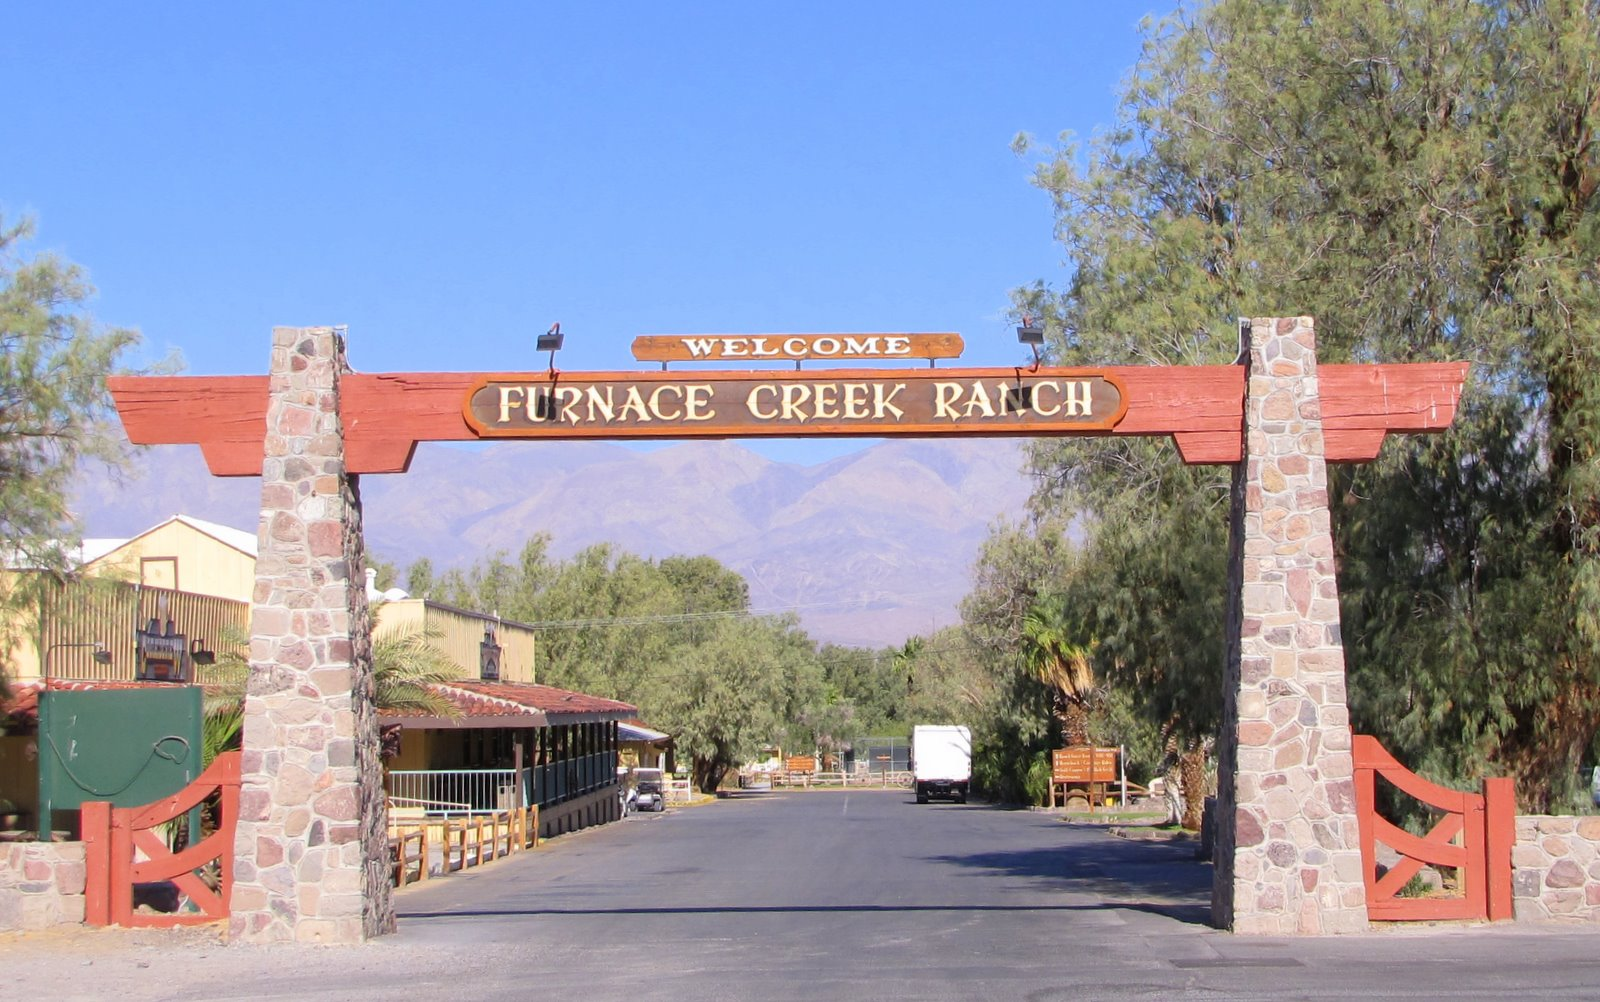 The Western Swing: The Furnace Creek Ranch, Death Valley